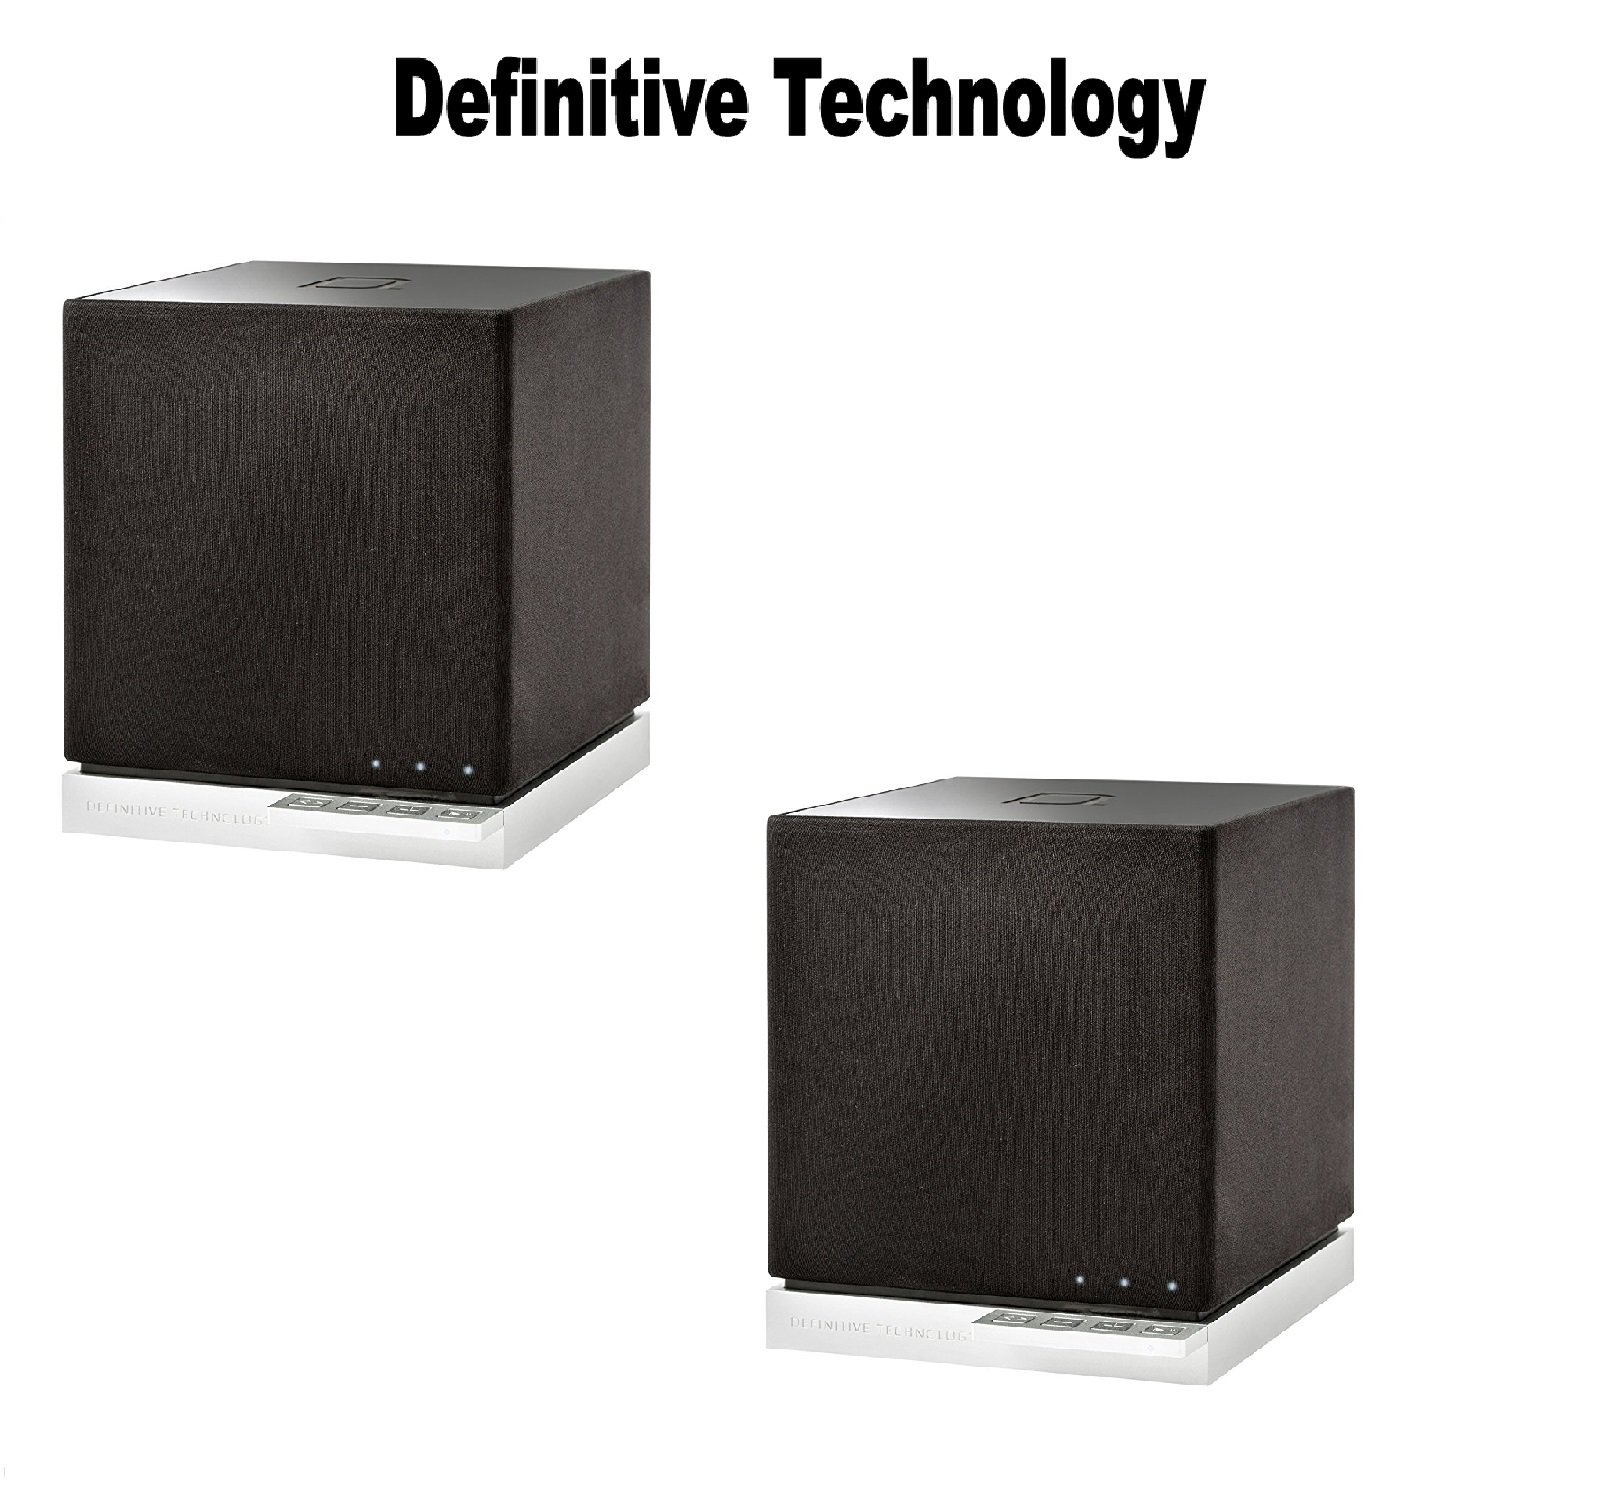 Definitive Technology (1 Pair) W7 Wireless Speaker (Black) Bundle by Definitive Technology (Image #1)